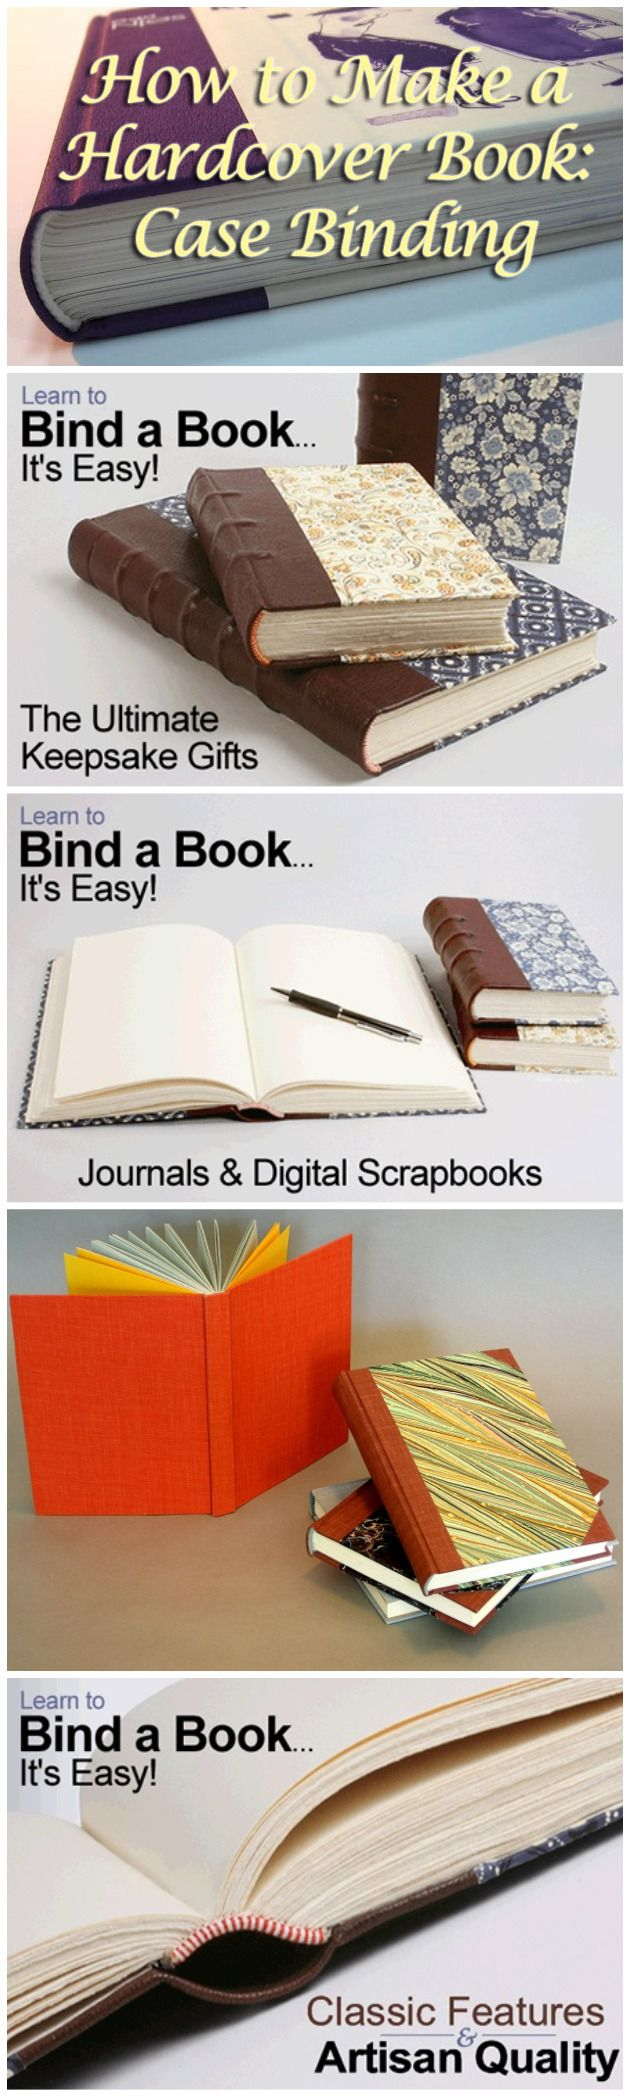 How to Make a Hardcover Book Case Binding Everything